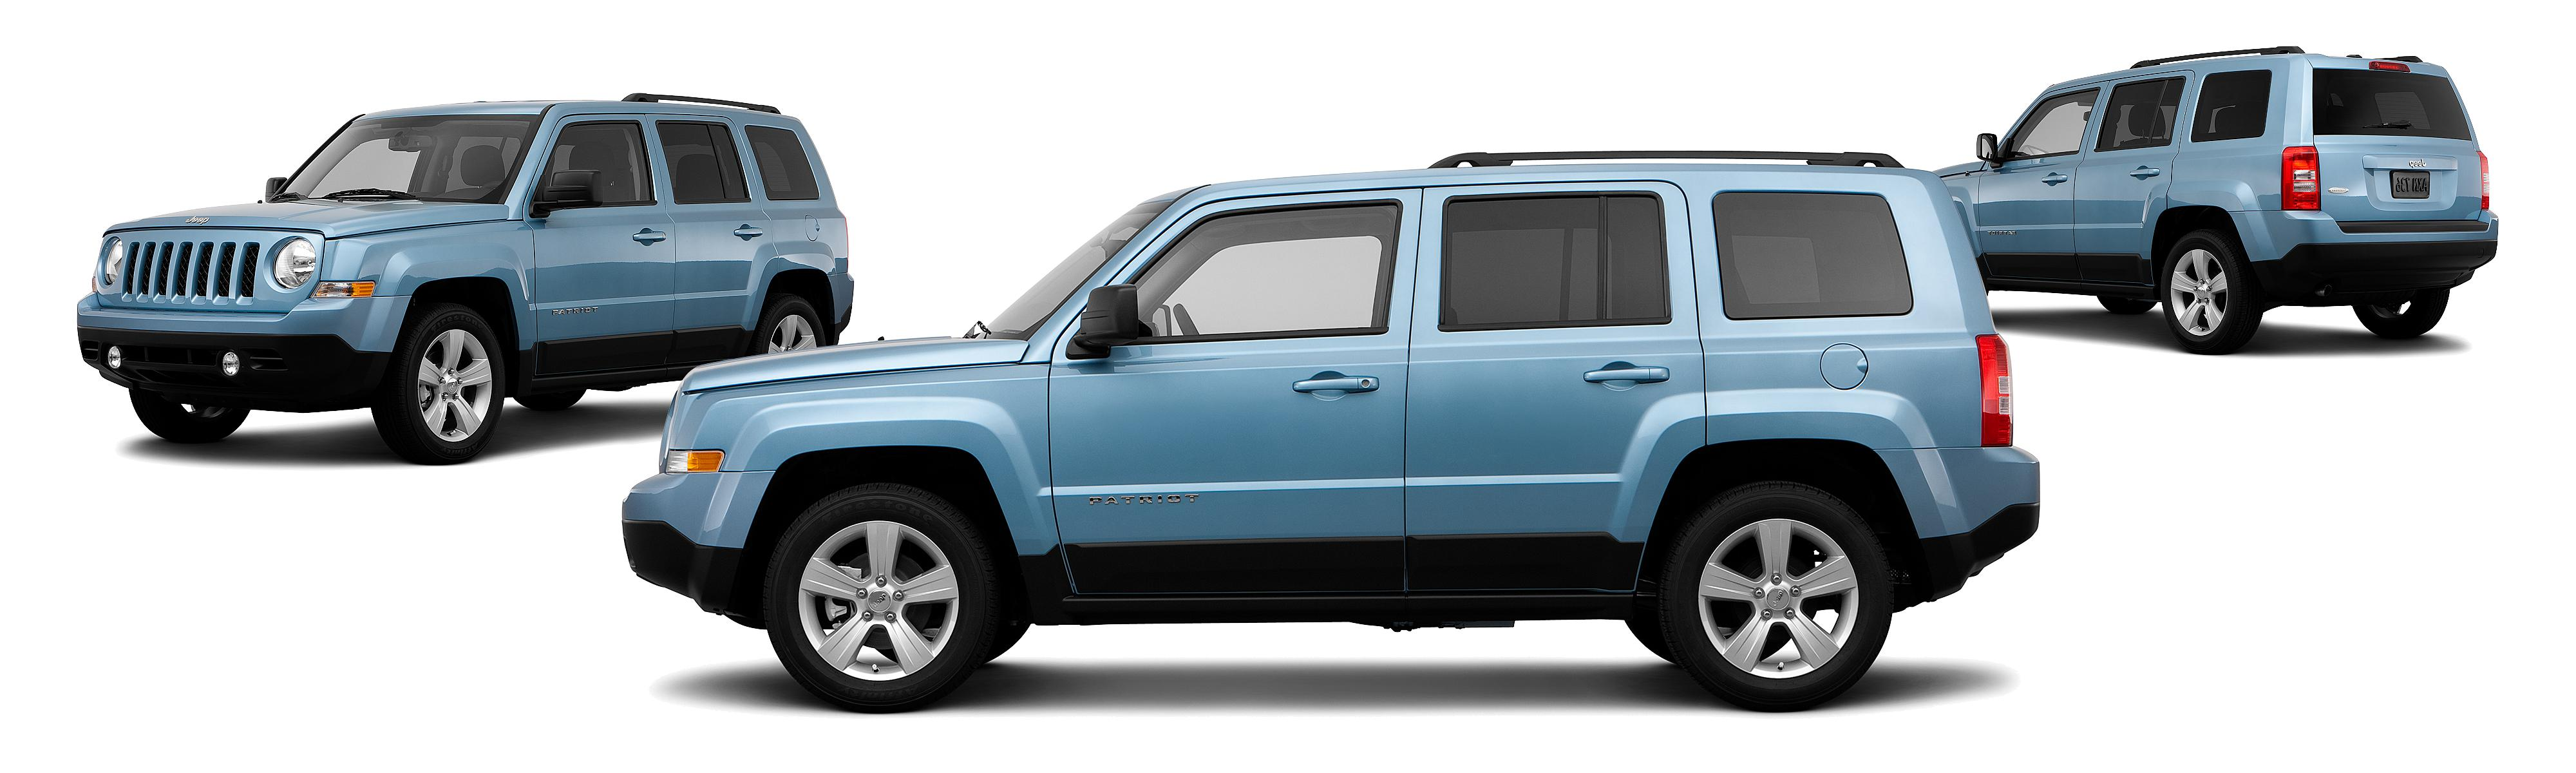 2014 Jeep Patriot Limited 4dr SUV Research GrooveCar